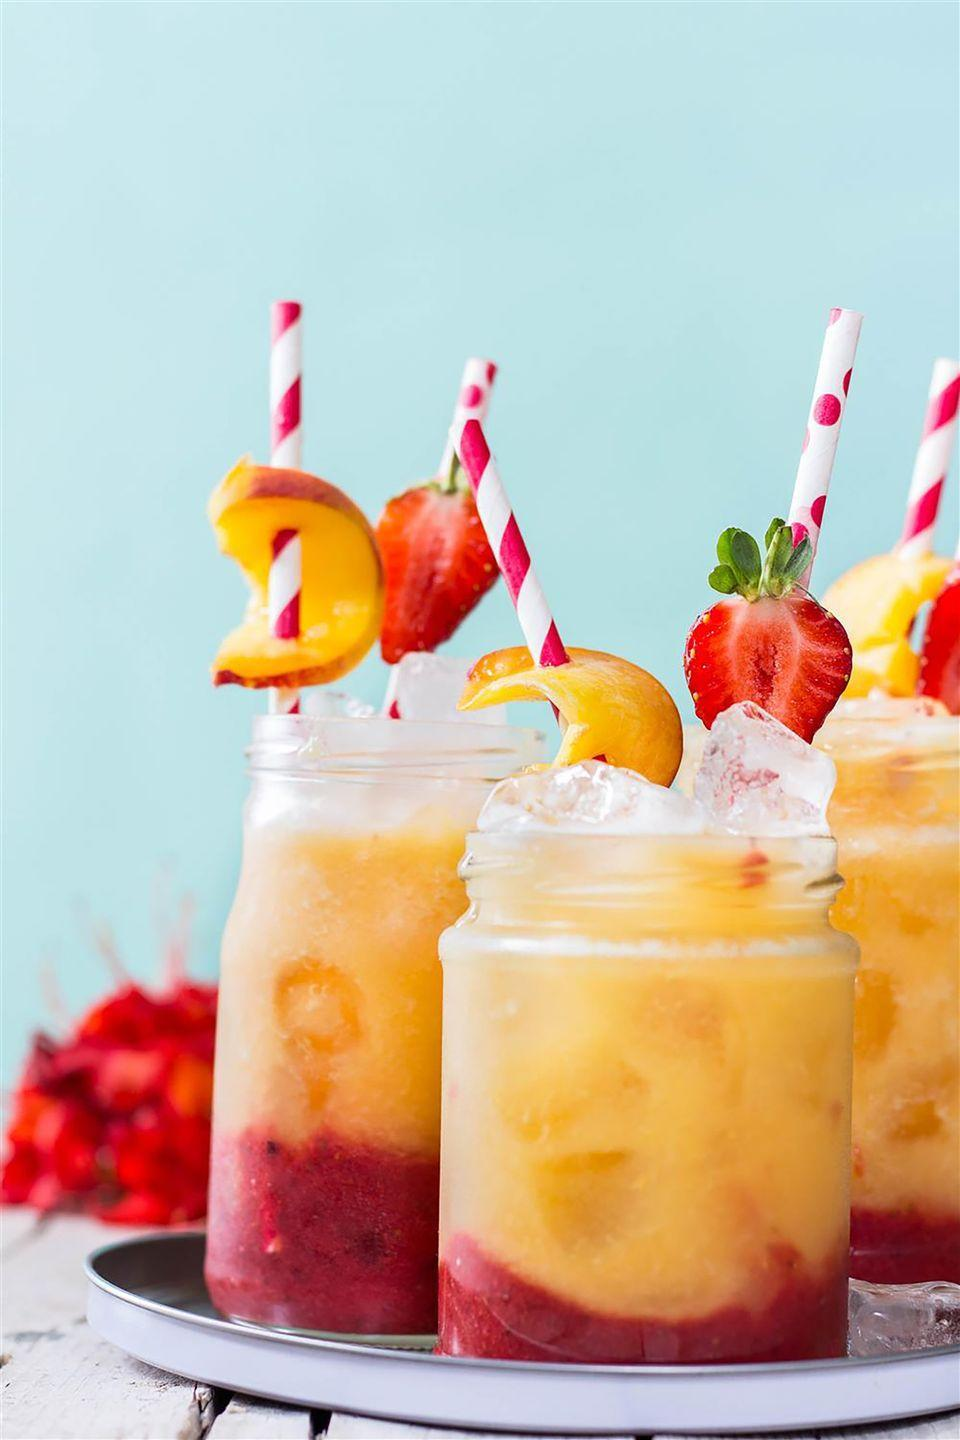 "<p>If you <a href=""https://www.womansday.com/food-recipes/food-drinks/g3036/peach-recipes/"" rel=""nofollow noopener"" target=""_blank"" data-ylk=""slk:can't resist the combination of peach"" class=""link rapid-noclick-resp"">can't resist the combination of peach</a> and strawberry flavors, this fizzy drink recipe will be your new summer favorite. </p><p><strong><em>Get the recipe at <a href=""https://www.useyournoodles.eu/roasted-peach-strawberry-fizz/"" rel=""nofollow noopener"" target=""_blank"" data-ylk=""slk:Use Your Noodles"" class=""link rapid-noclick-resp"">Use Your Noodles</a>.</em></strong></p><p><strong>RELATED:</strong> <a href=""https://www.womansday.com/food-recipes/food-drinks/g2470/fruit-salad-recipe/"" rel=""nofollow noopener"" target=""_blank"" data-ylk=""slk:Fruit Salad Recipes You Need to Make This Summer"" class=""link rapid-noclick-resp"">Fruit Salad Recipes You Need to Make This Summer</a></p>"